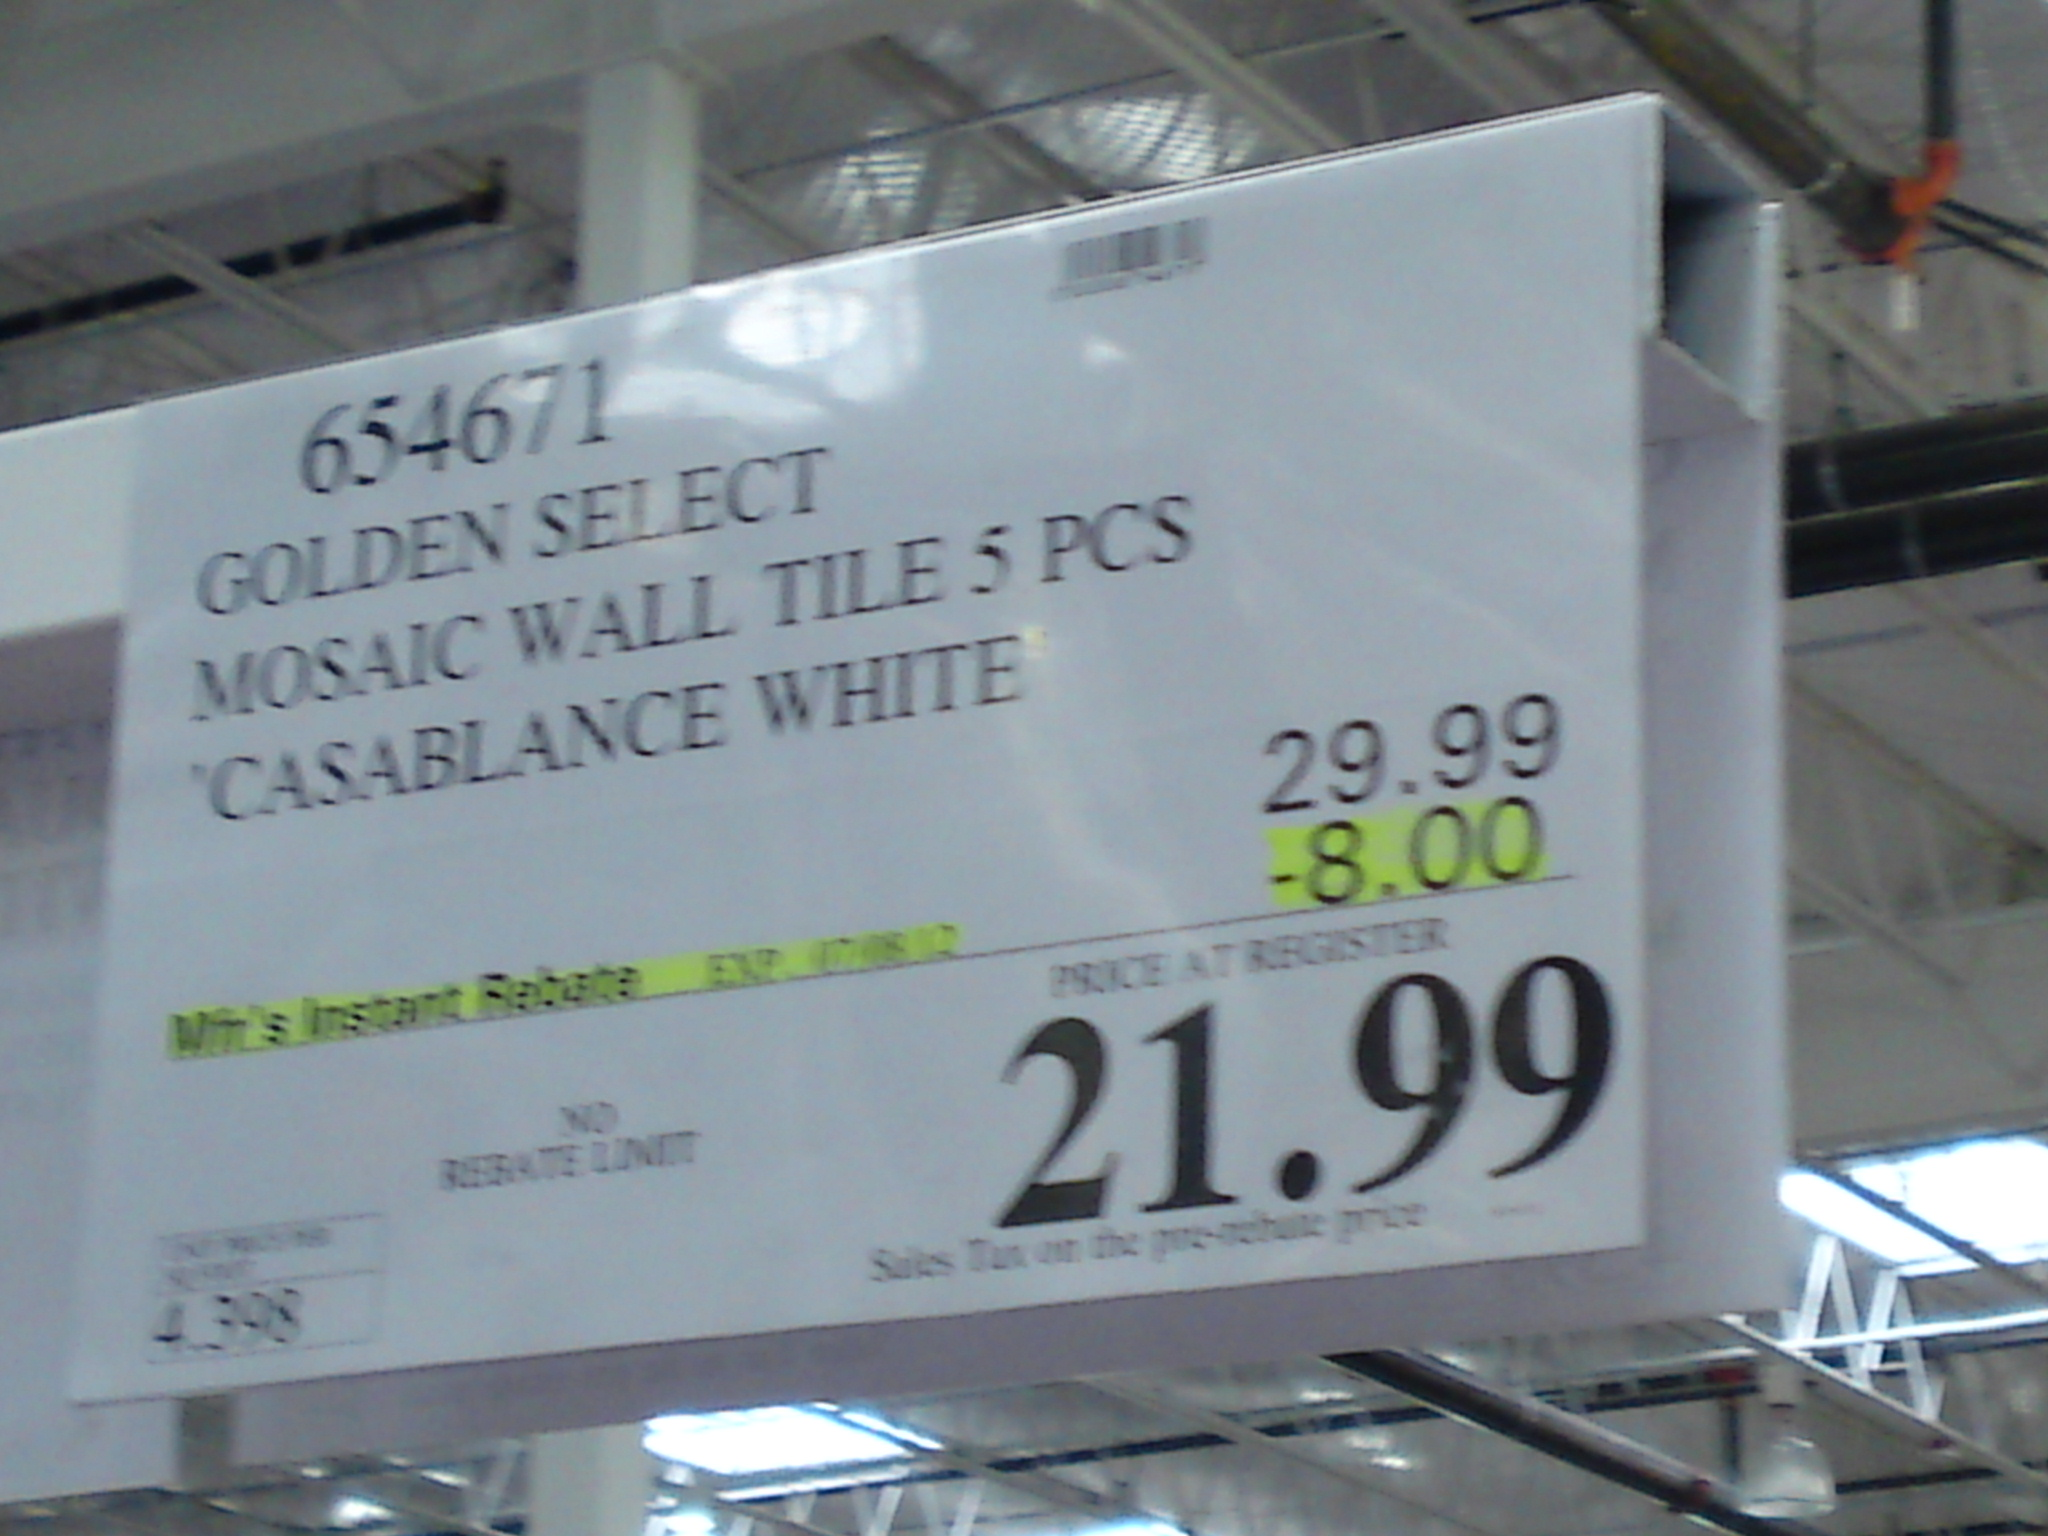 Costco Deal: Golden Select Casablanca Marble, Glass and Stone Mosaic